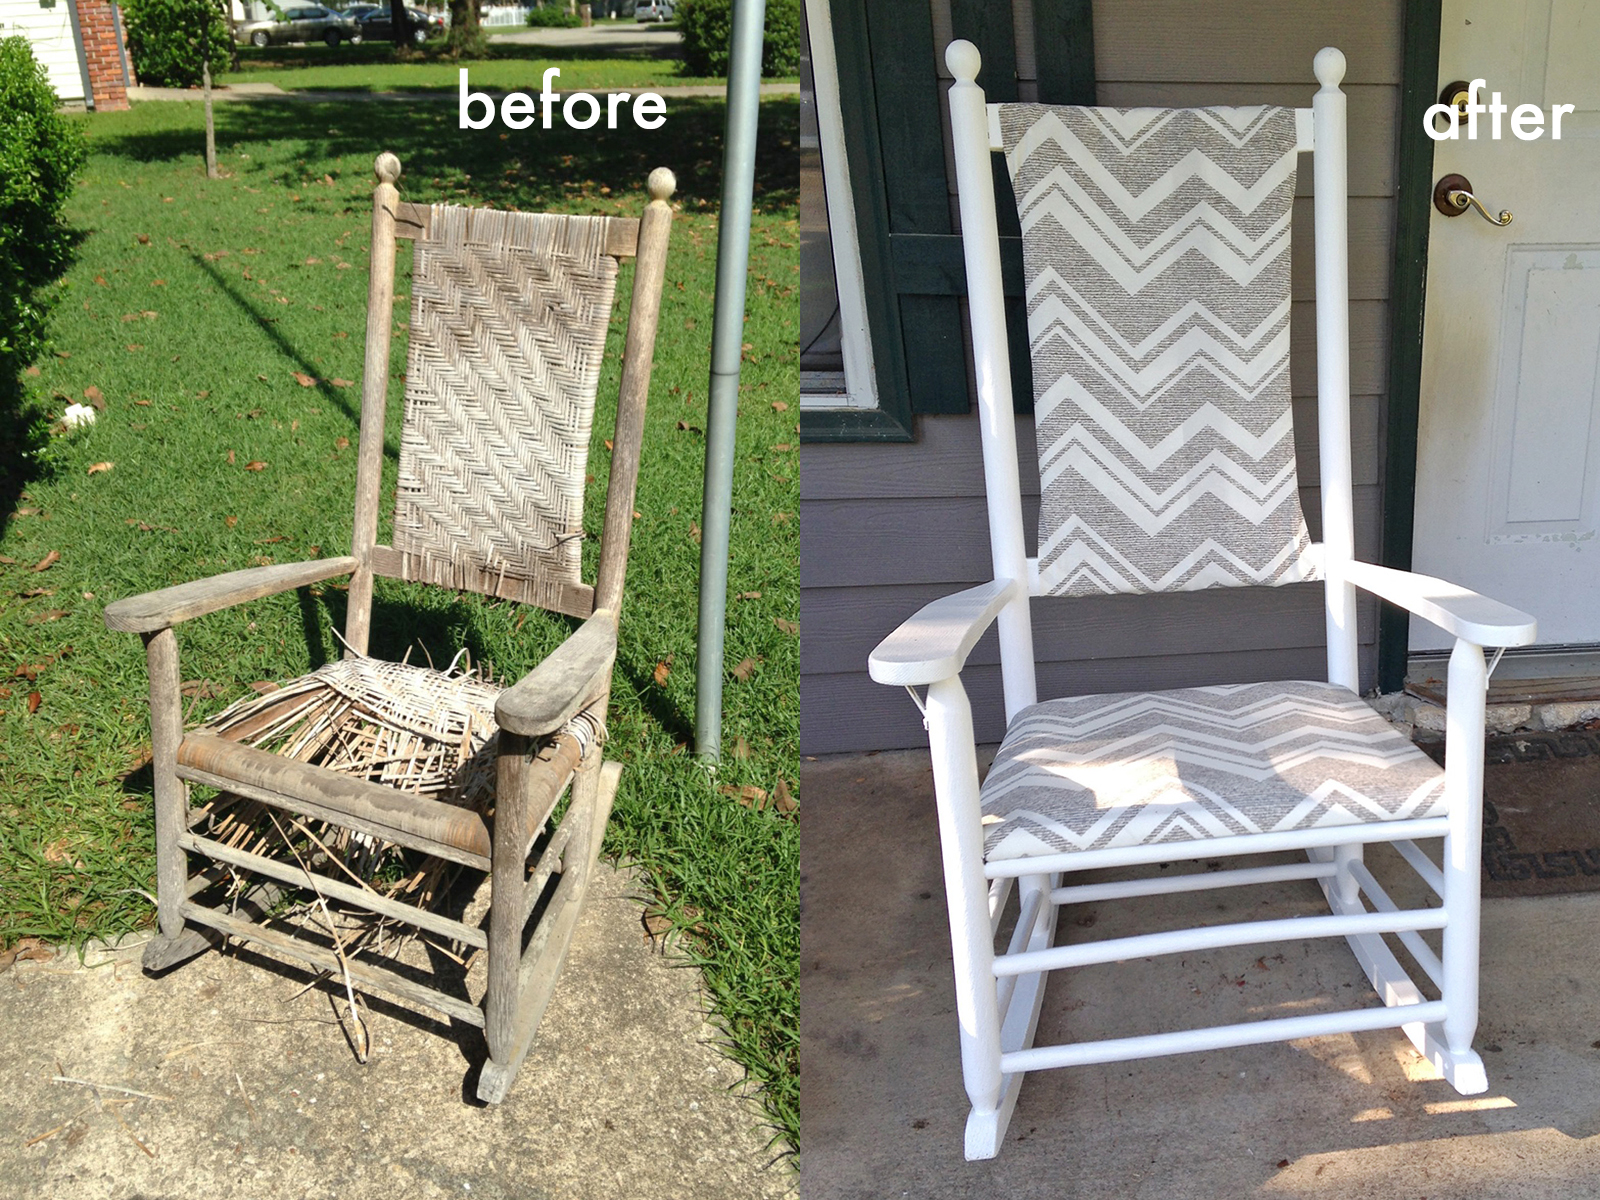 how to make a rocking chair heavy duty lift chairs we can anything redo